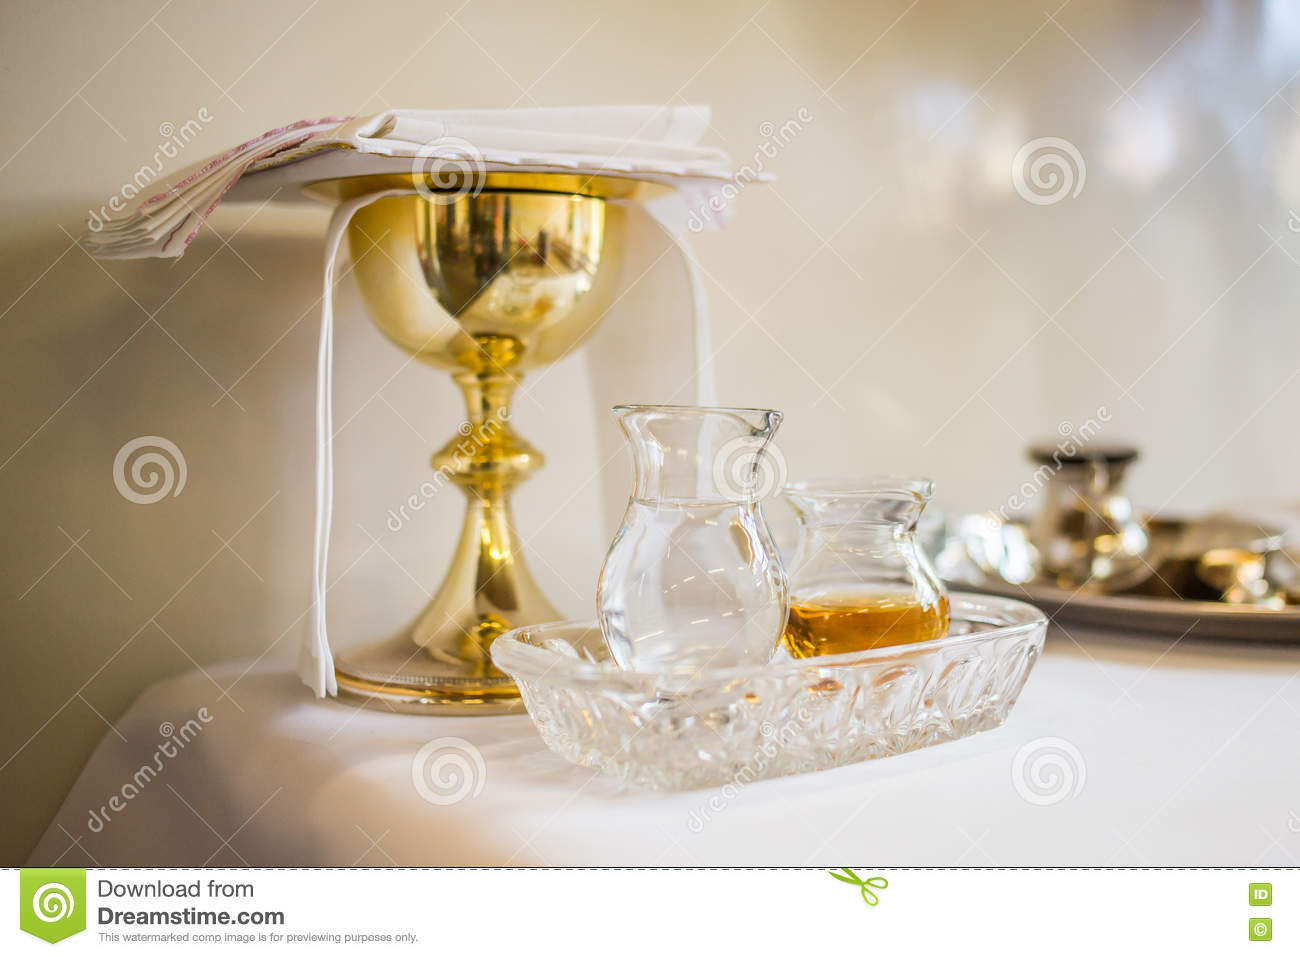 Holy water and oil for unction stock image image of body broken royalty free stock photo buycottarizona